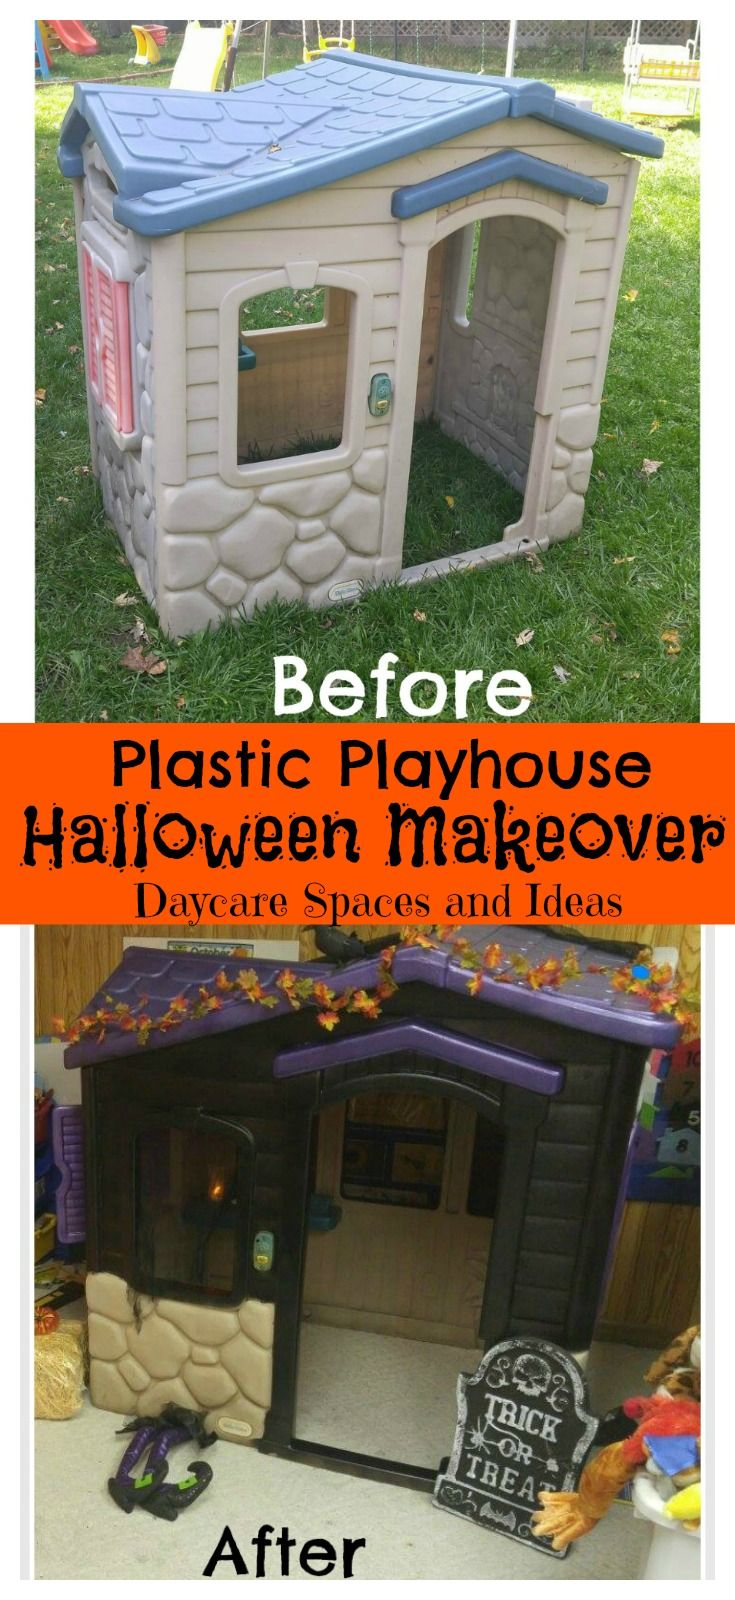 Plastic Playhouse Halloween Makeover   Especially for Family Child ...